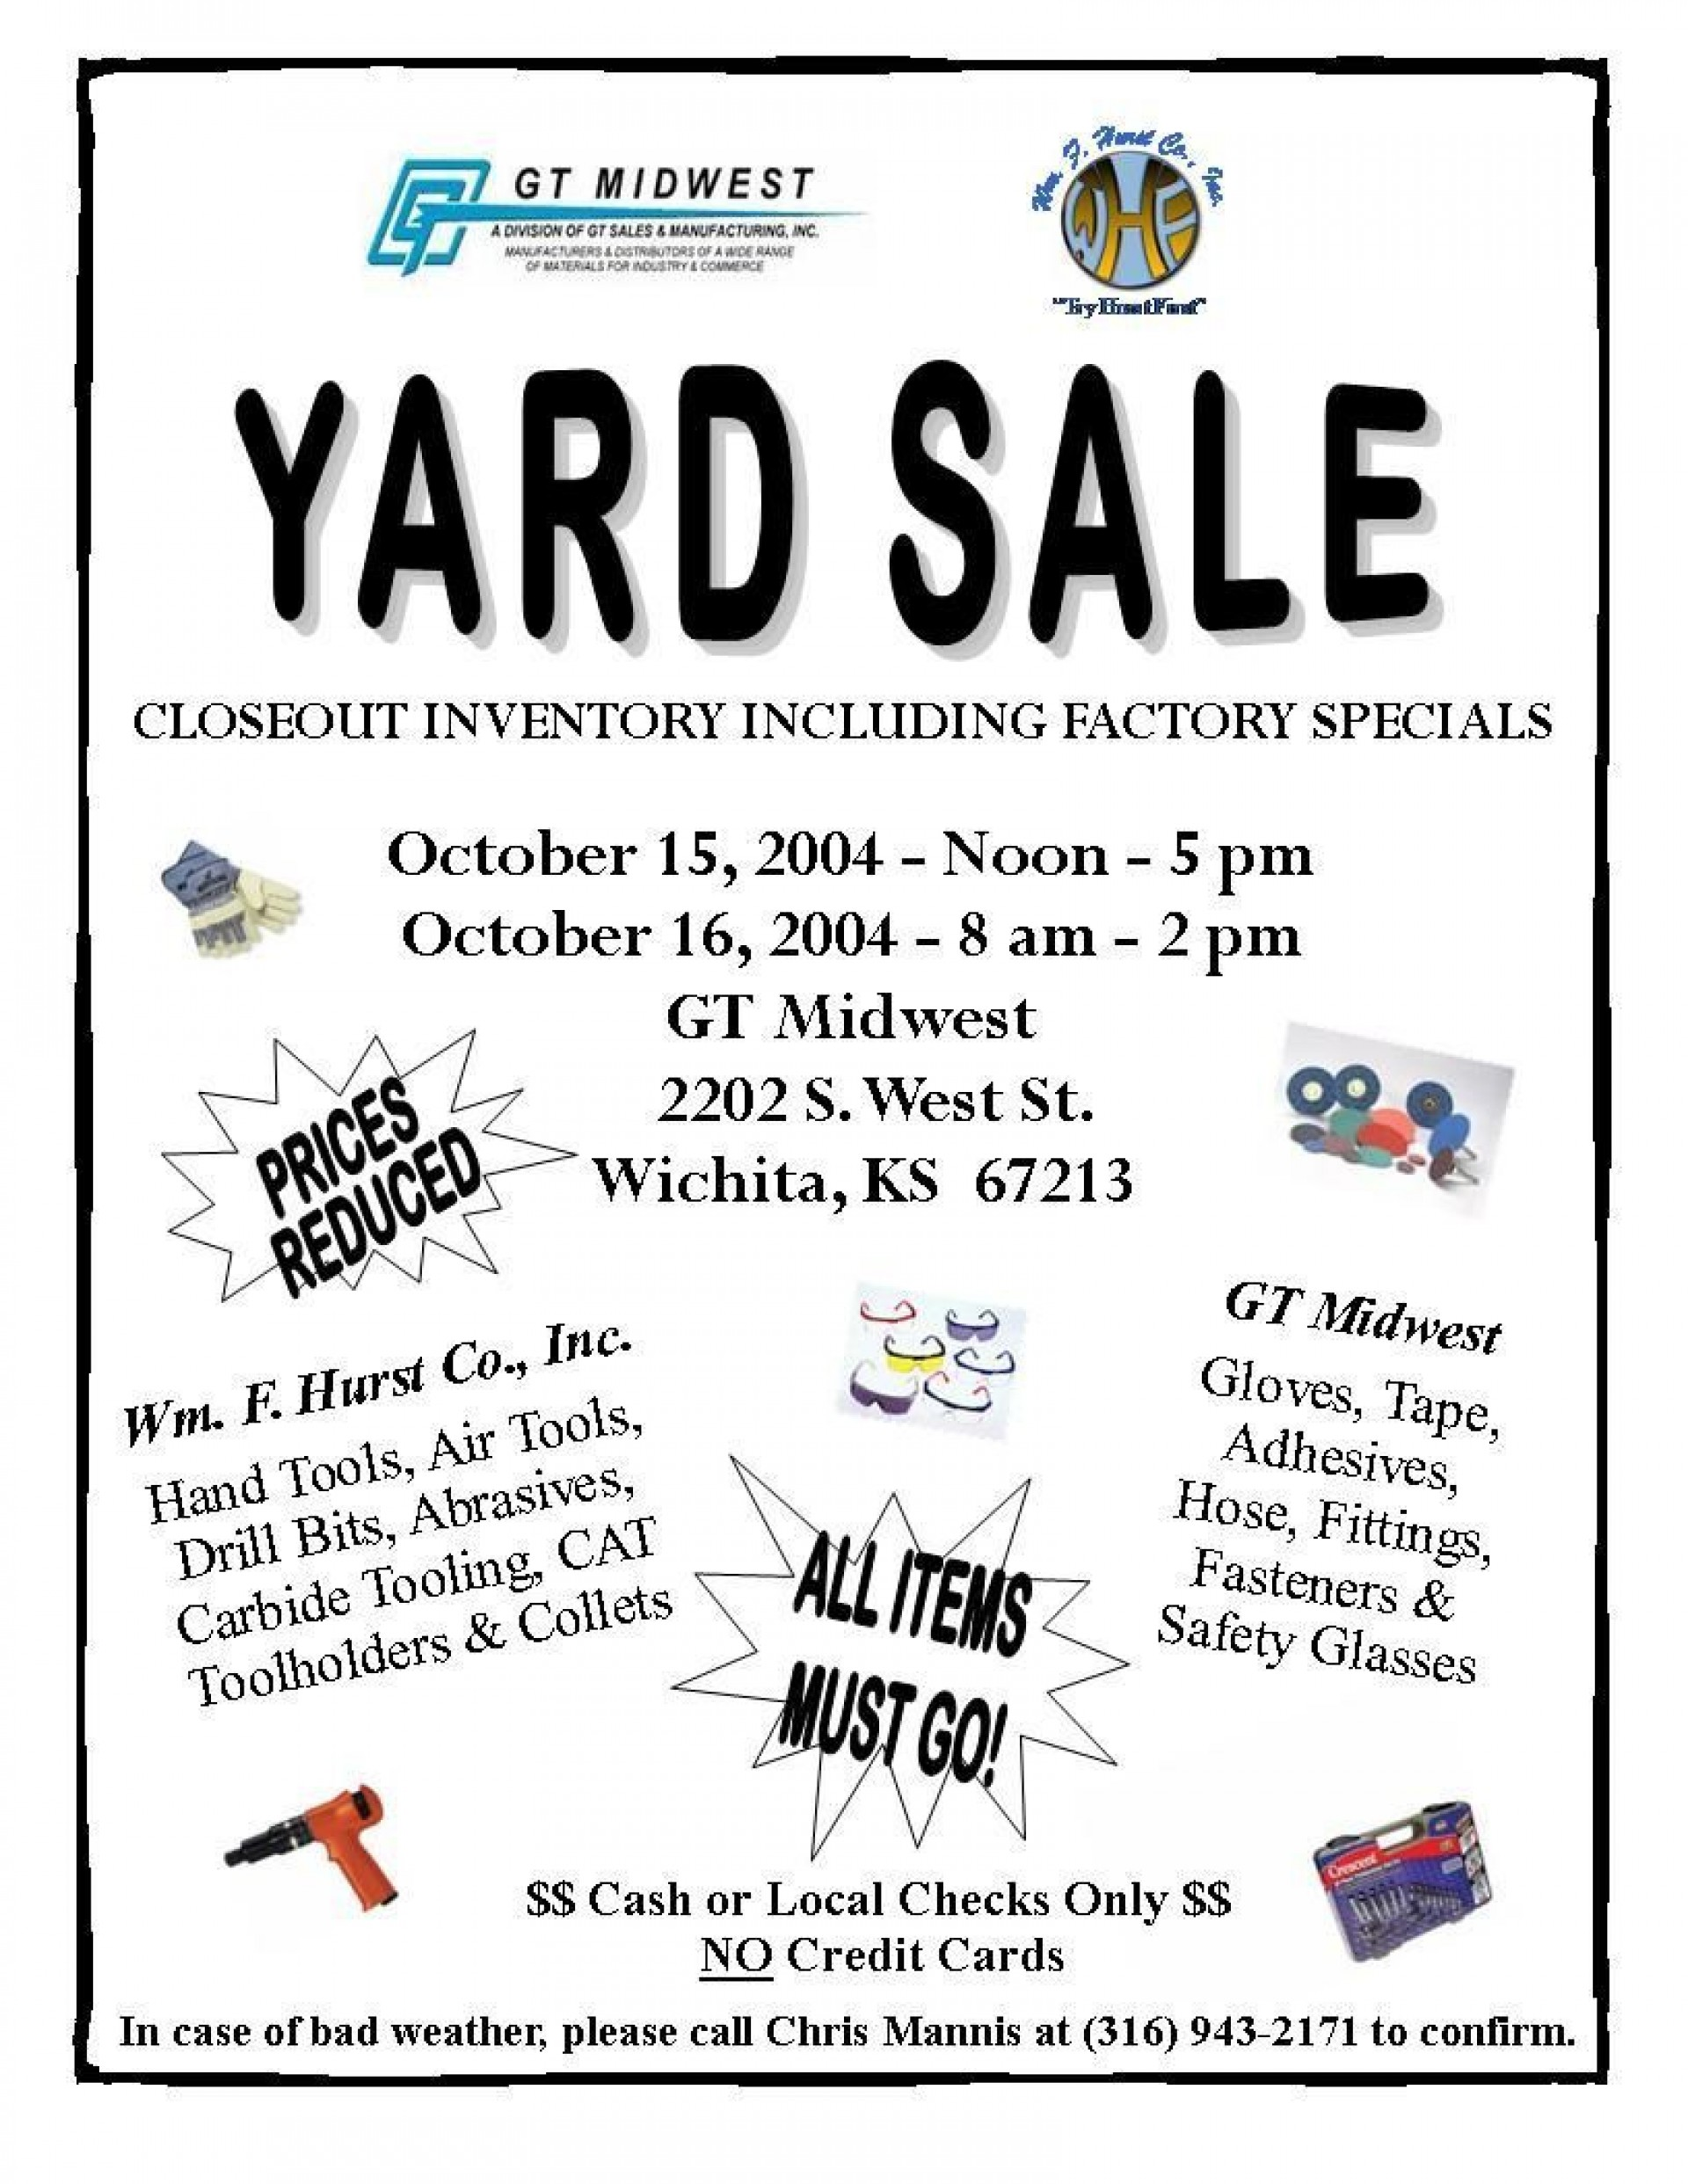 005 Formidable Yard Sale Flyer Template Free Concept  Community Garage1920